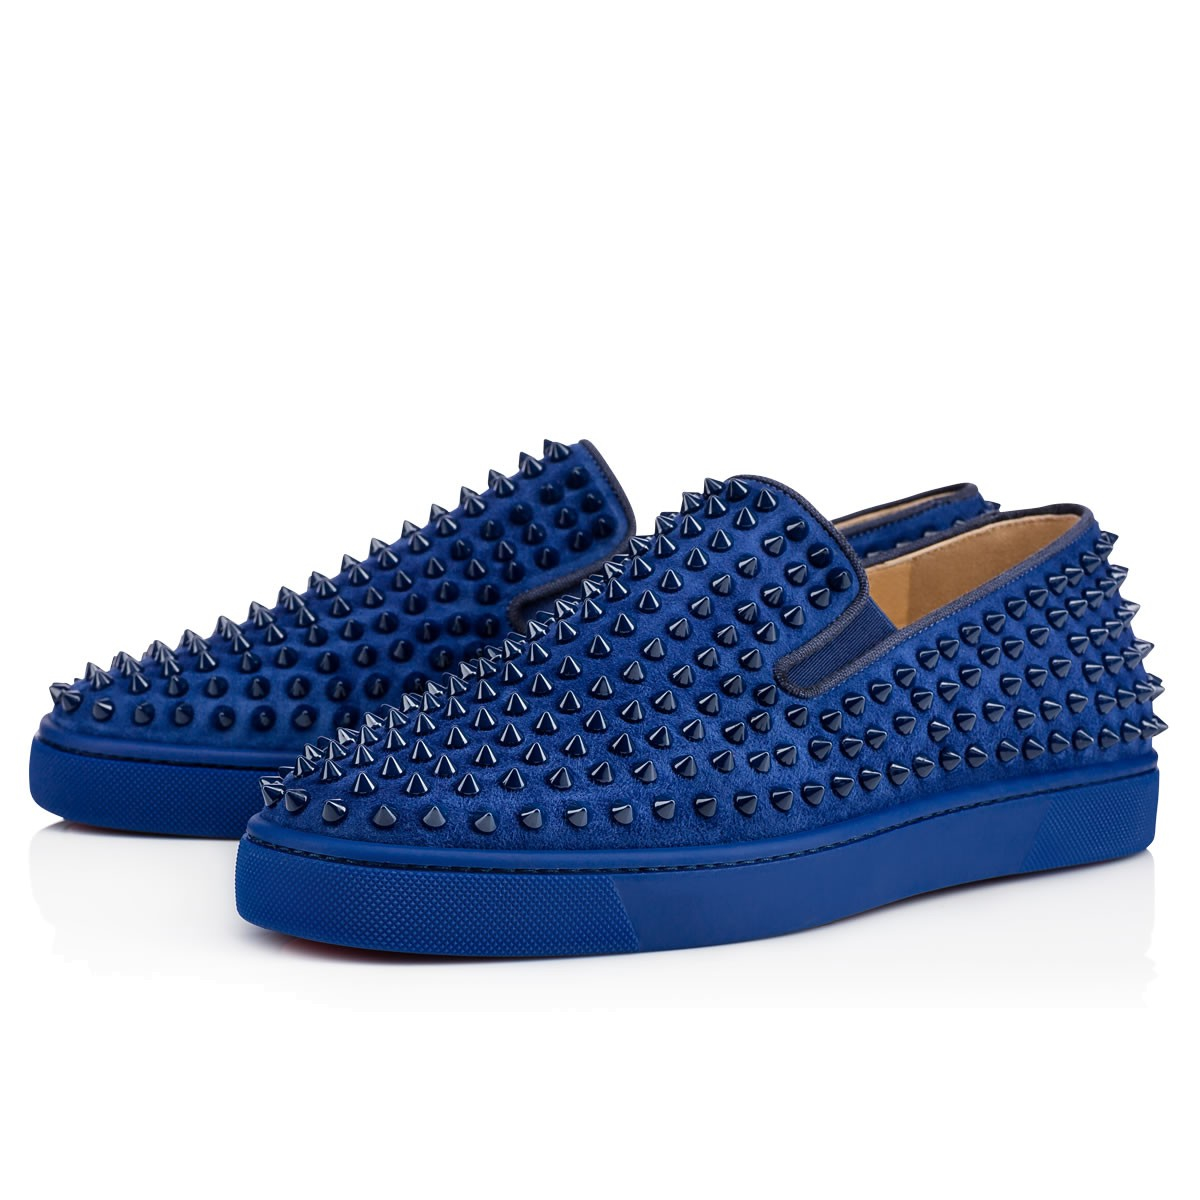 dae6a1e9870c Artesur » christian louboutin pik boat men s flat Multi Leather